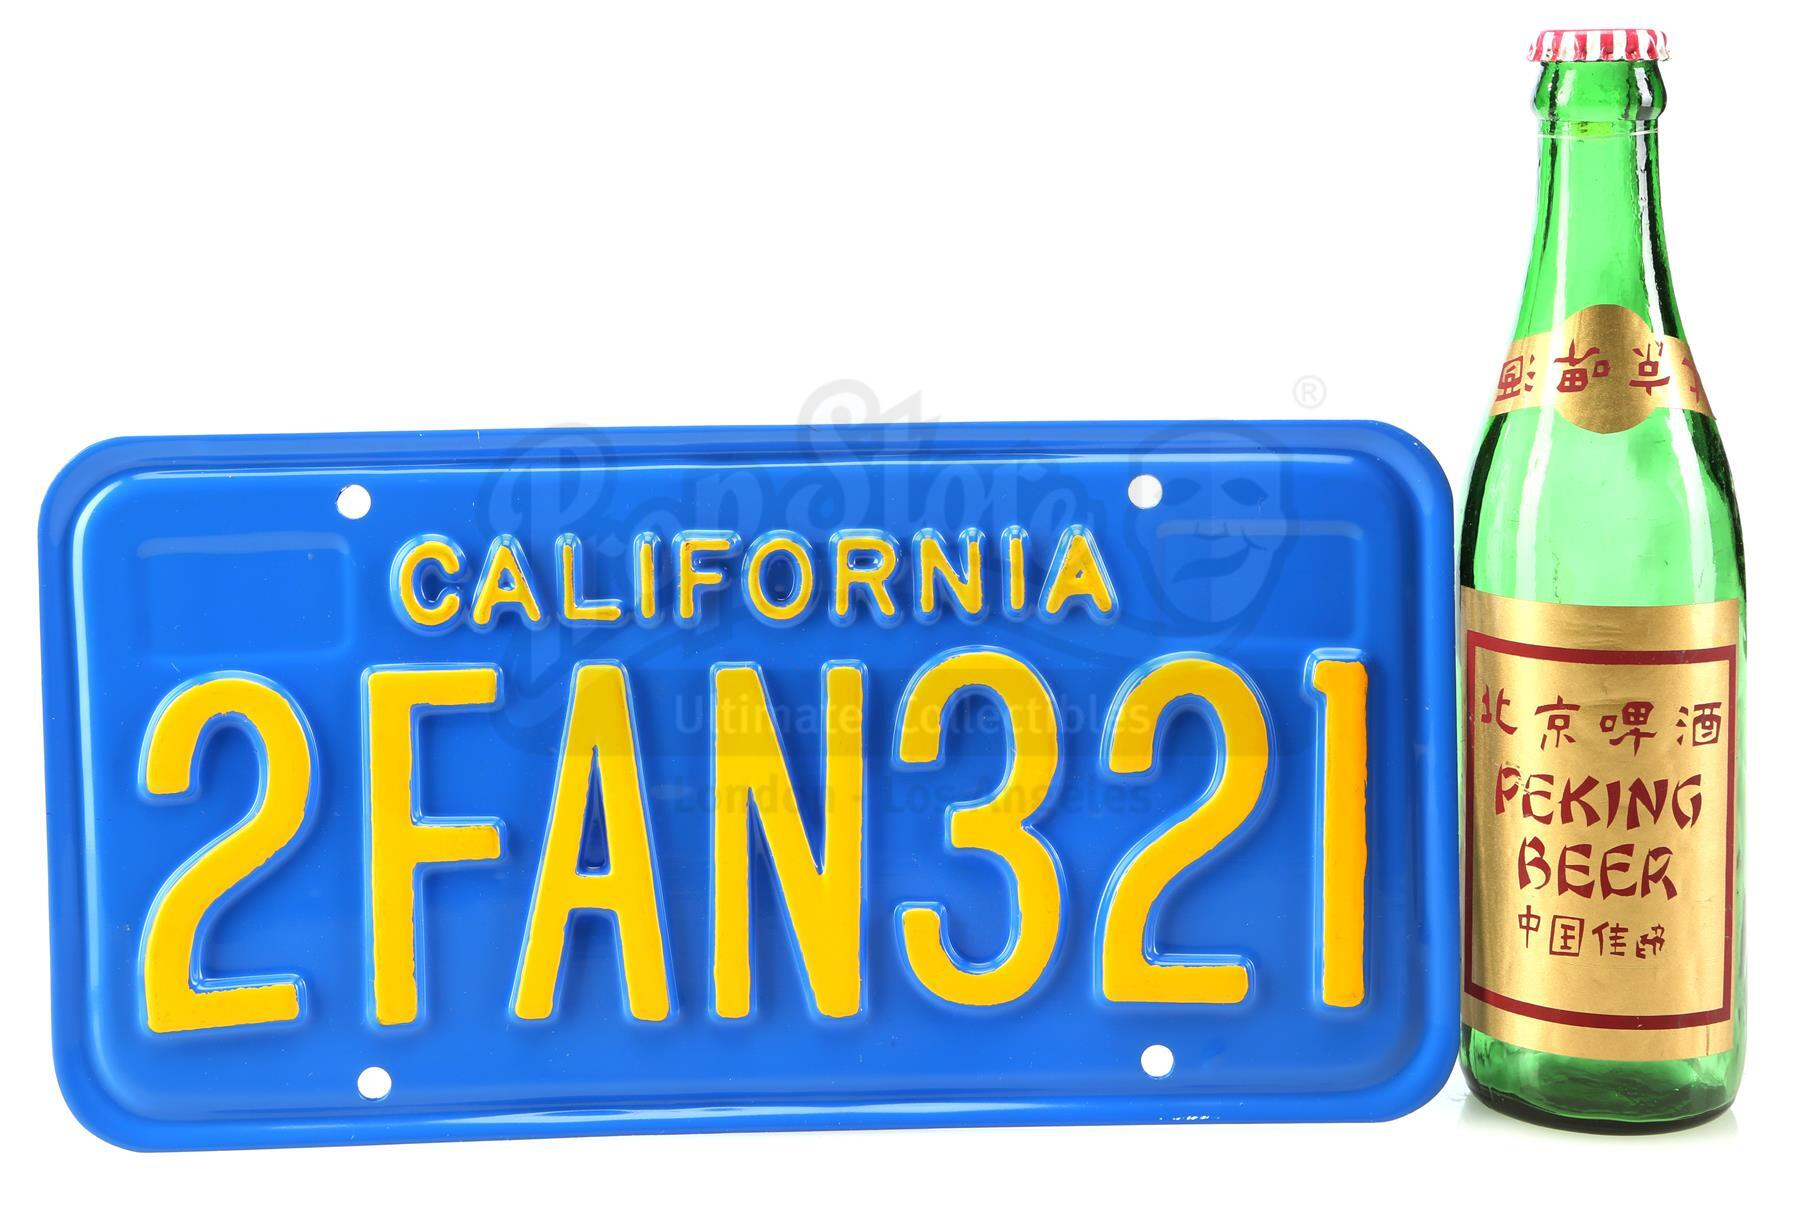 Lot # 535: BIG TROUBLE IN LITTLE CHINA - Jack Burton's (Kurt Russell) License Plate and Beer Bottle